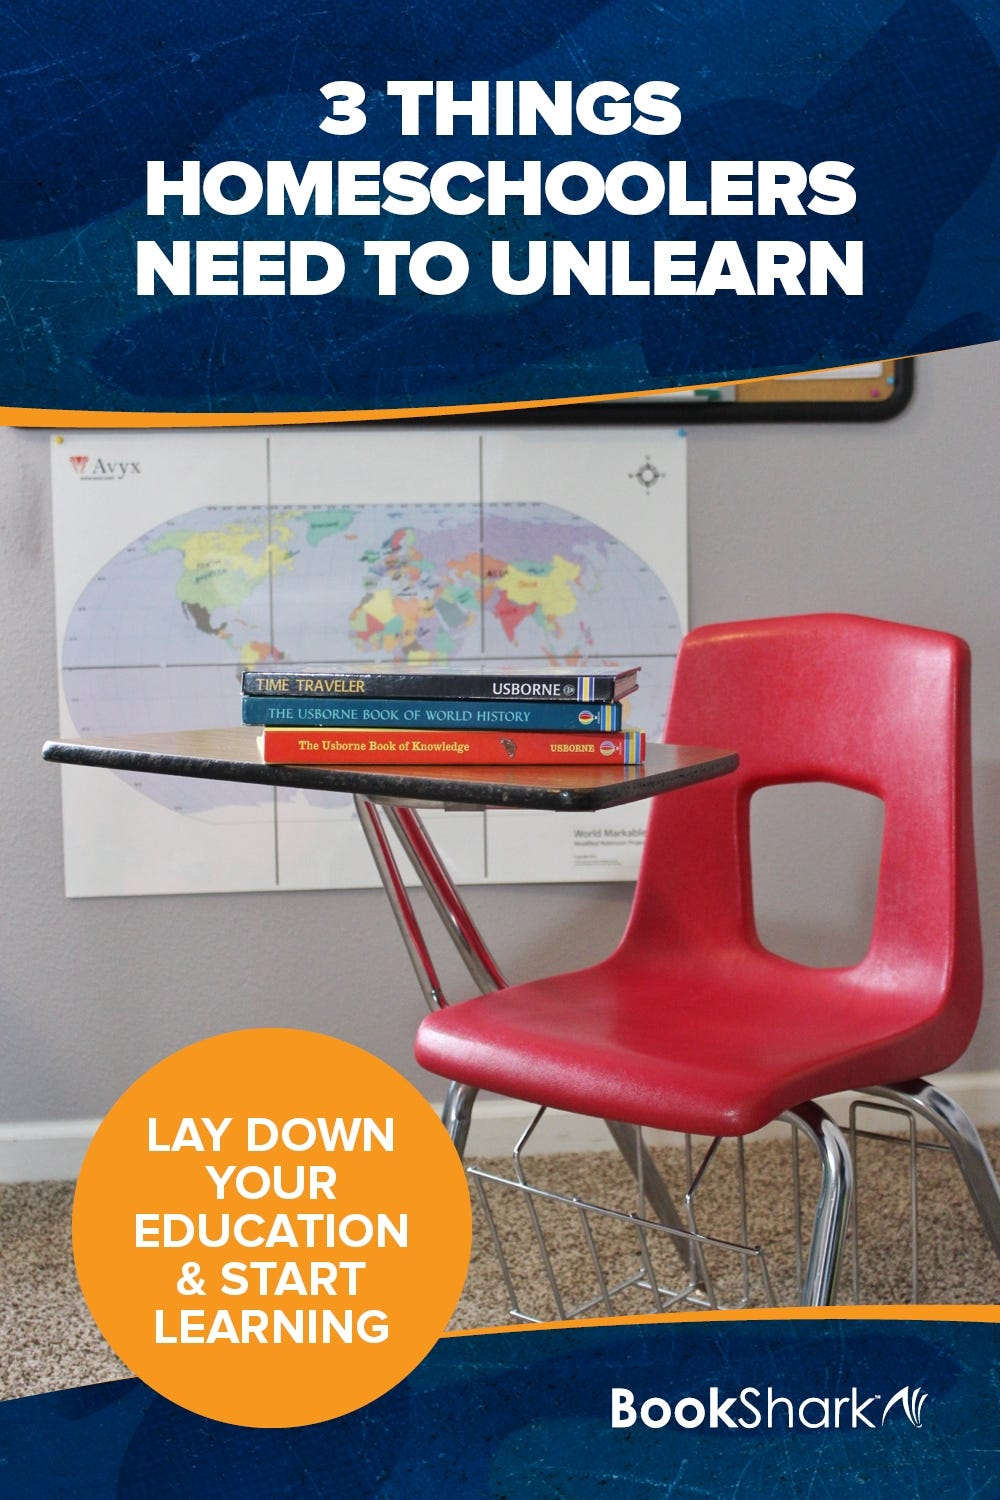 3 Things Homeschoolers Need to Unlearn